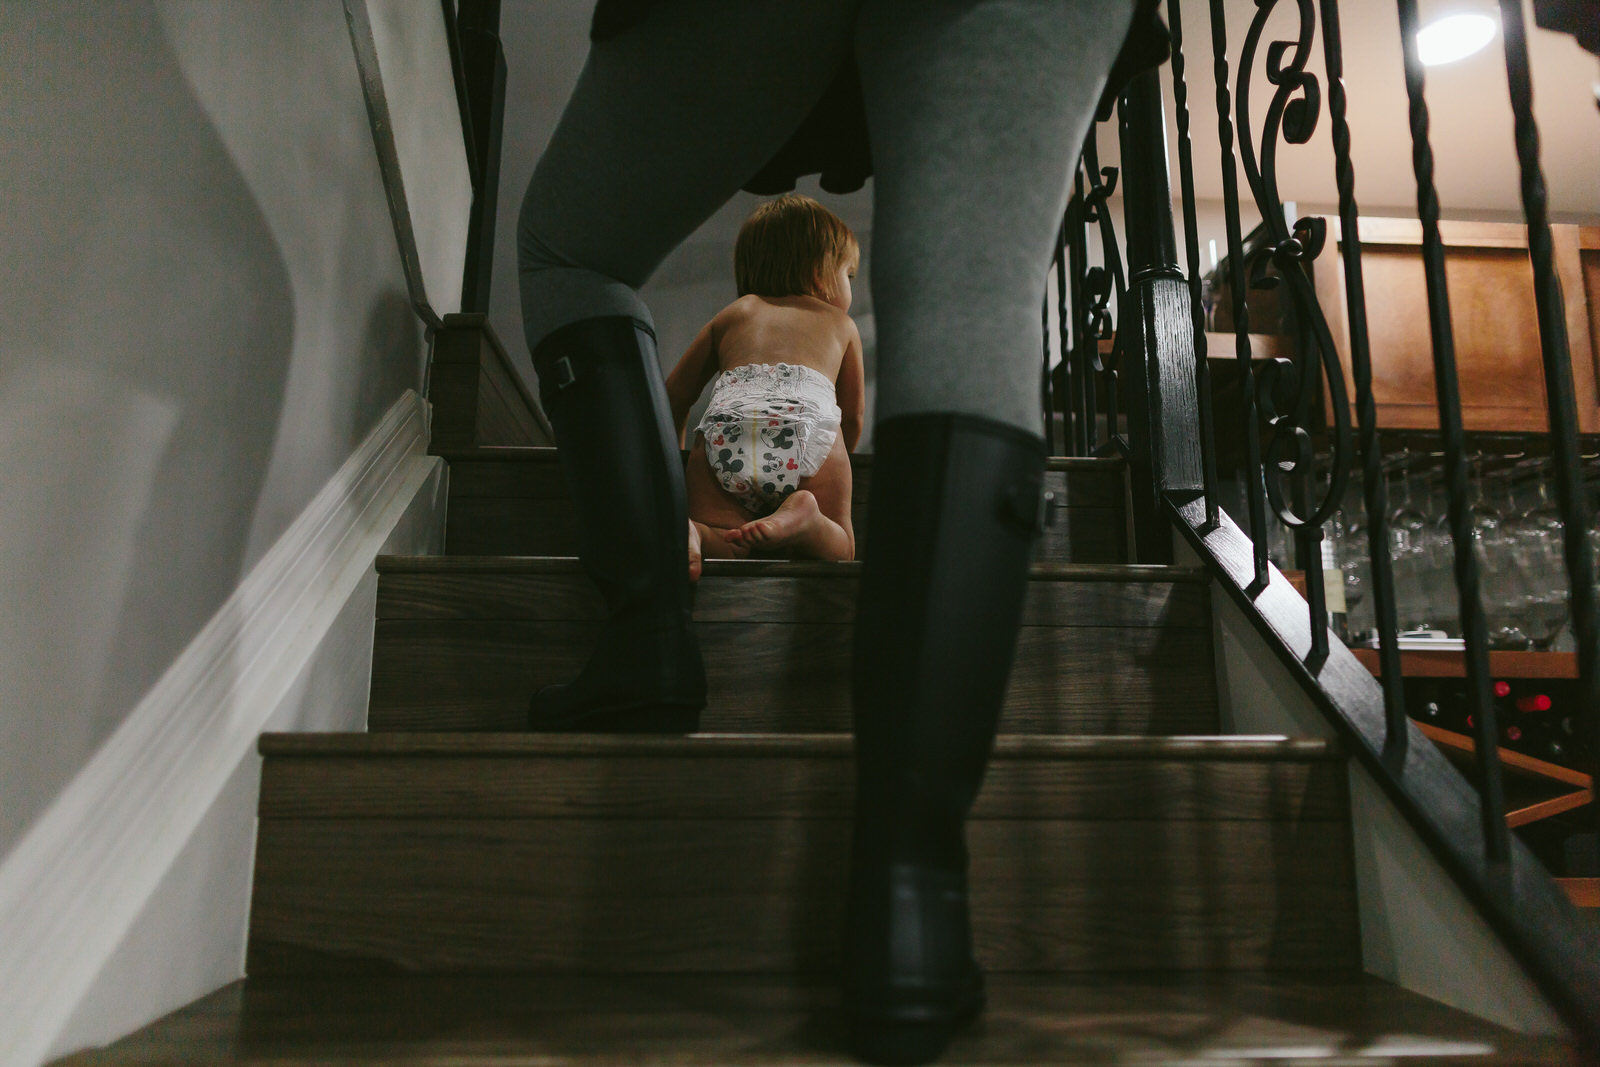 toddler portrait session documentary tiny house photo toddler climbing stairs